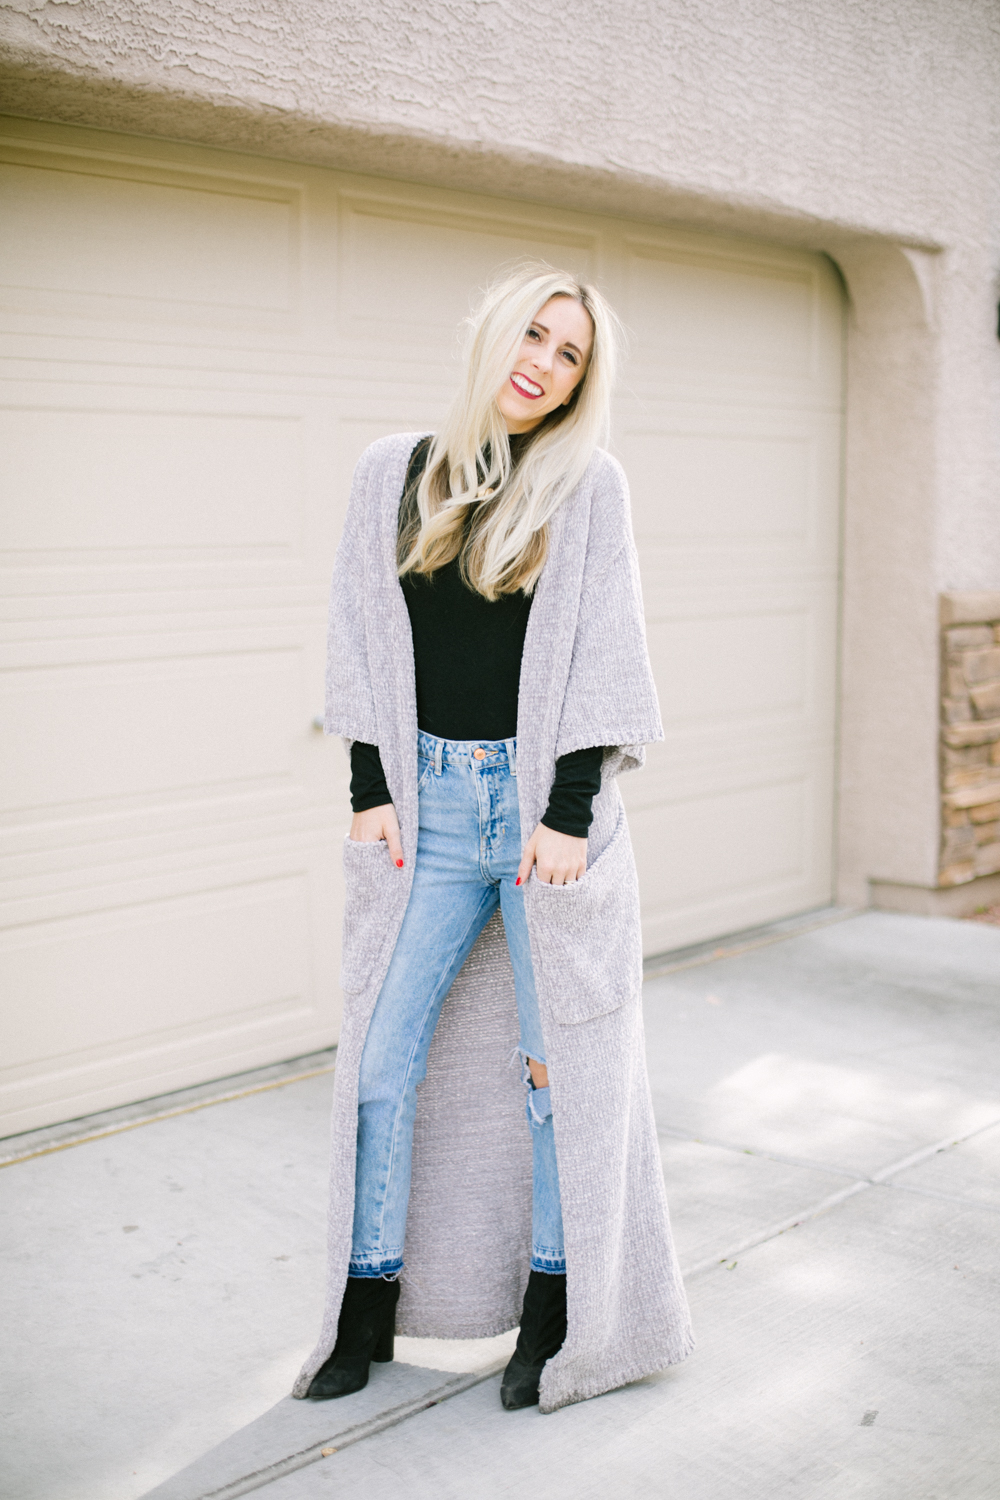 Holiday Season by Las Vegas style bloggers Life of a Sister